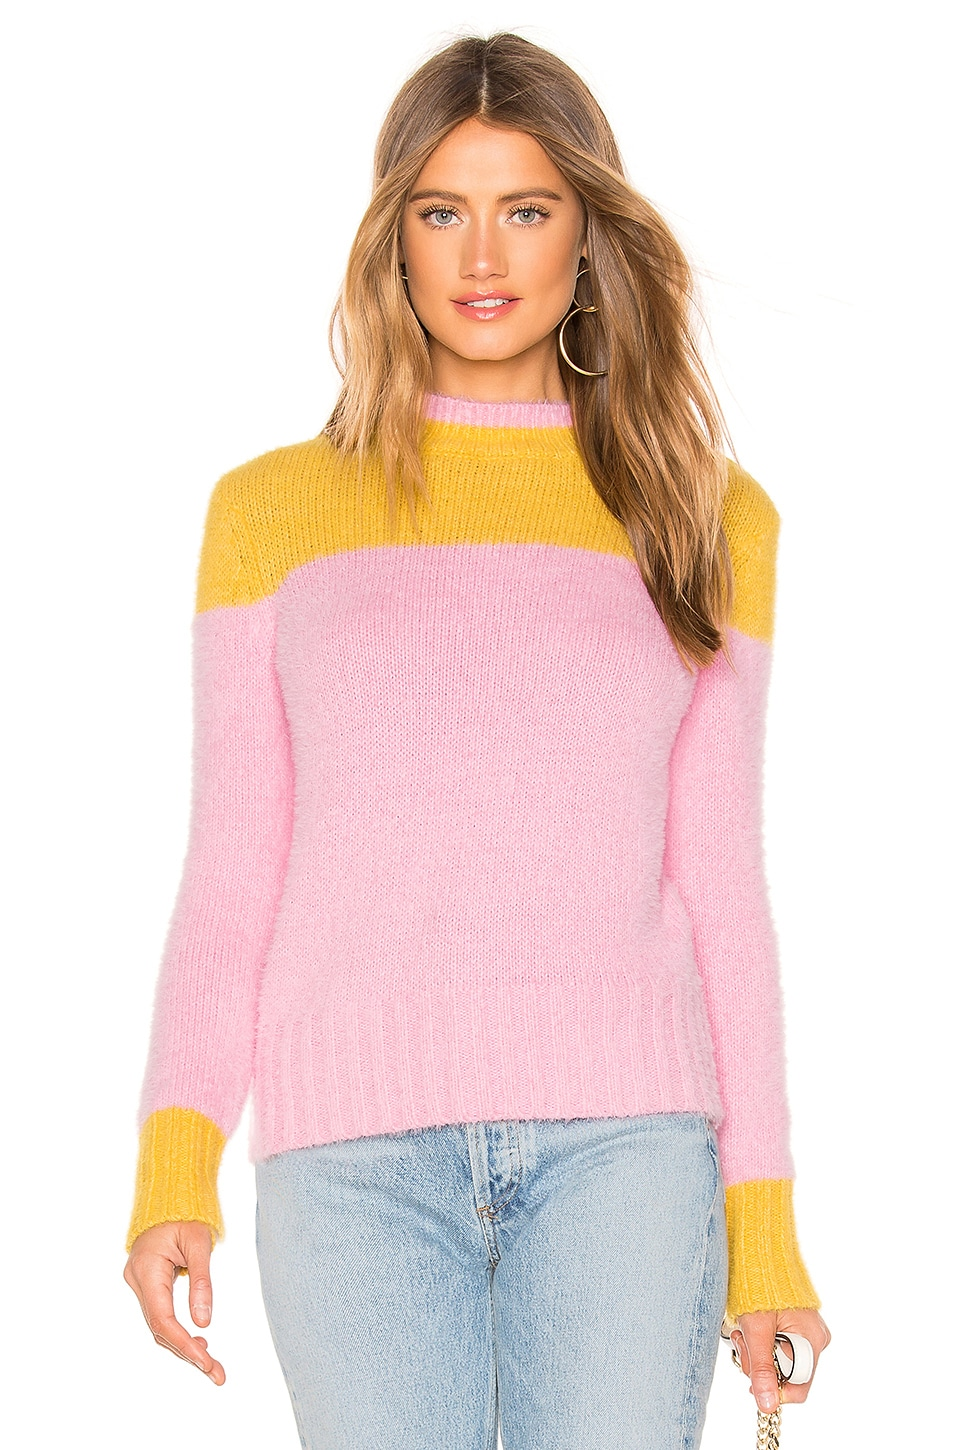 Lovers + Friends Blaire Sweater in Orange & Pink